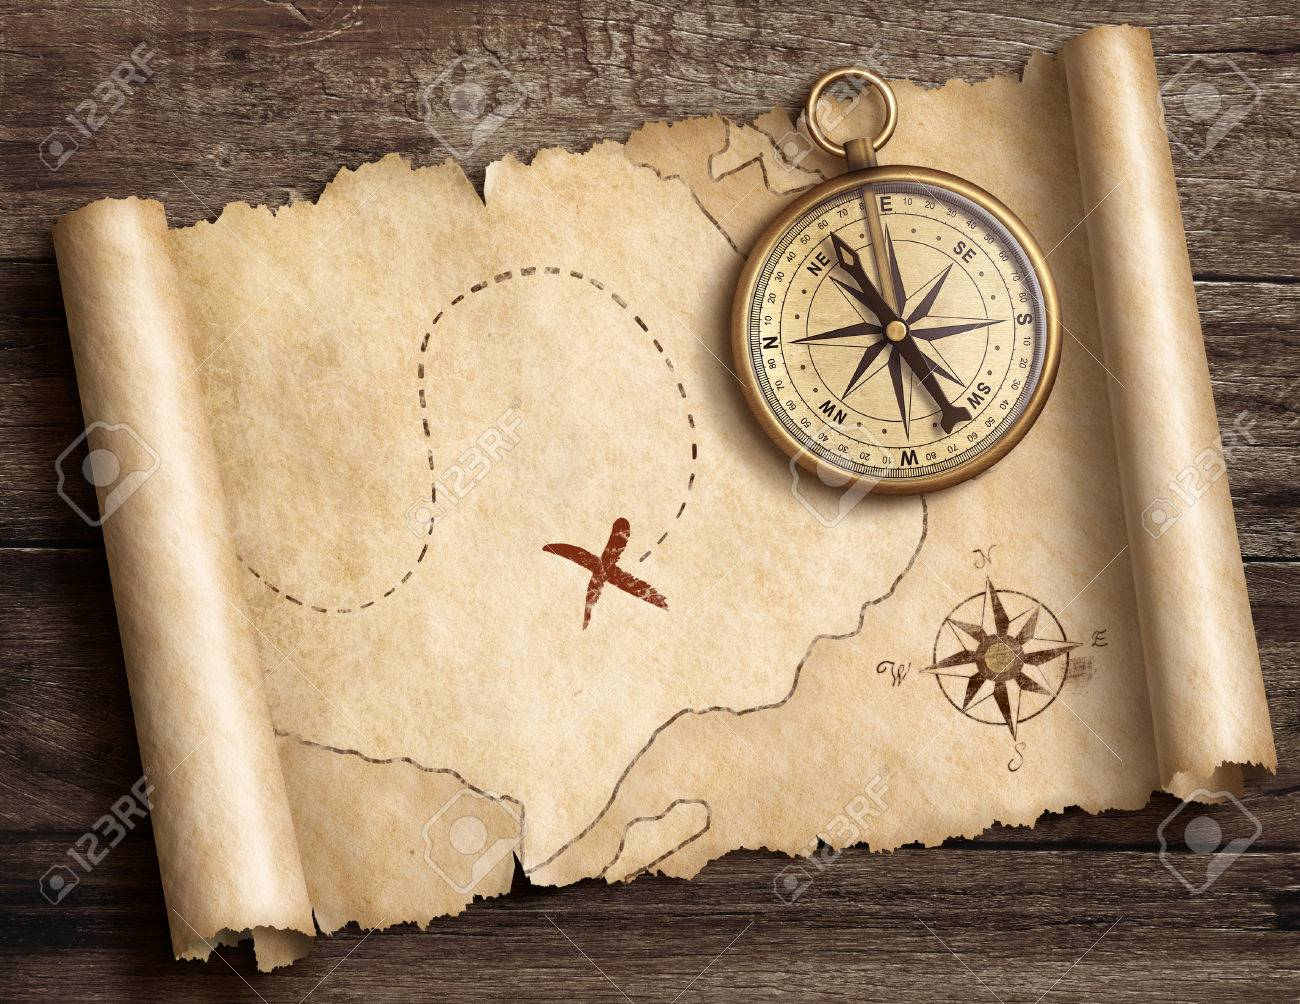 Illustration   Old Brass Nautical Compass On Table With Treasure Map 3d  Illustration